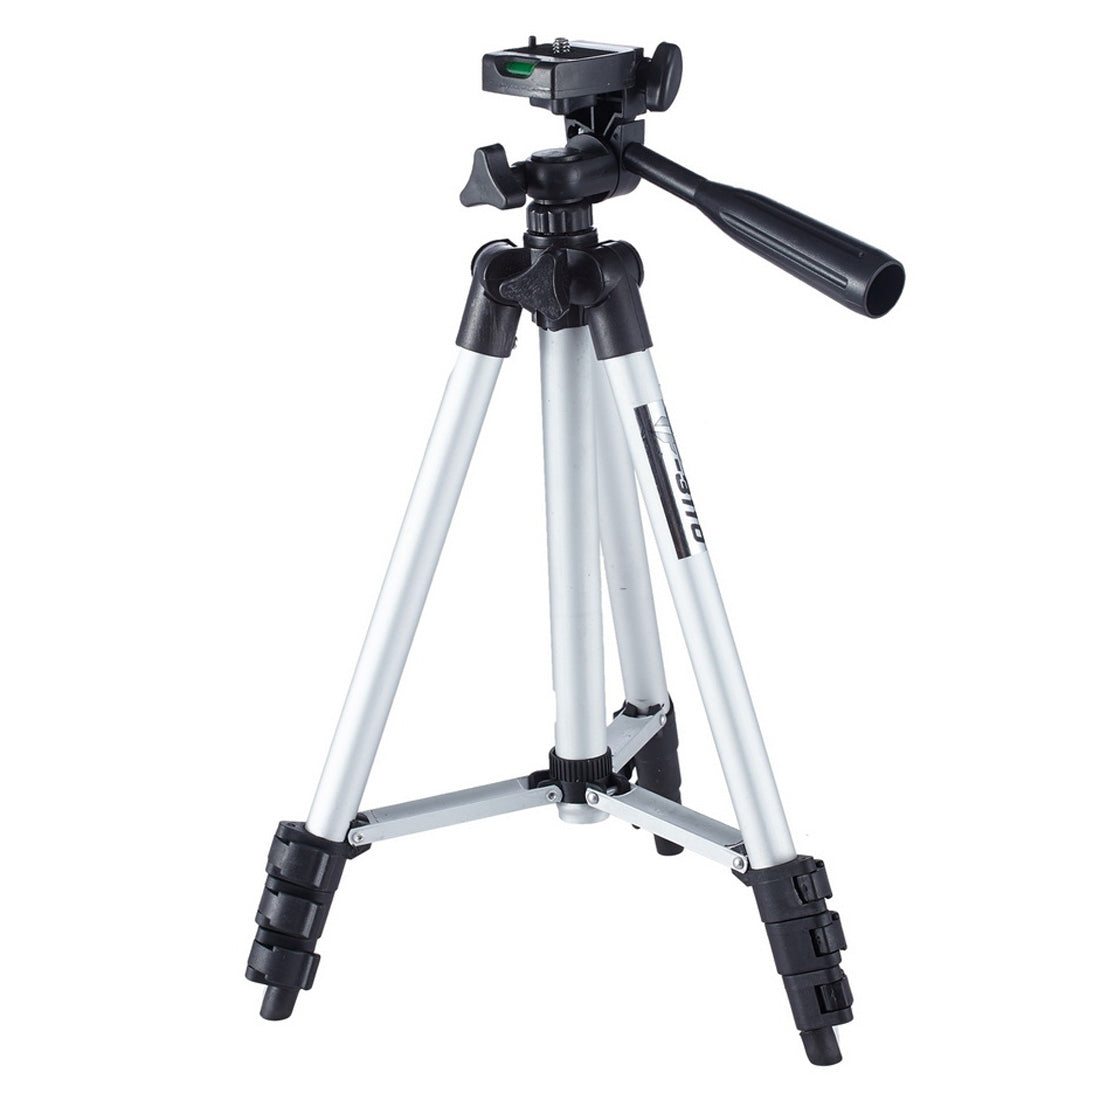 Live Broadcast Tripod 4-Section Folding Legs Aluminum Alloy Tripod Mount with U-Shape Three-Dimensional Tripod Head for DSLR & Dig